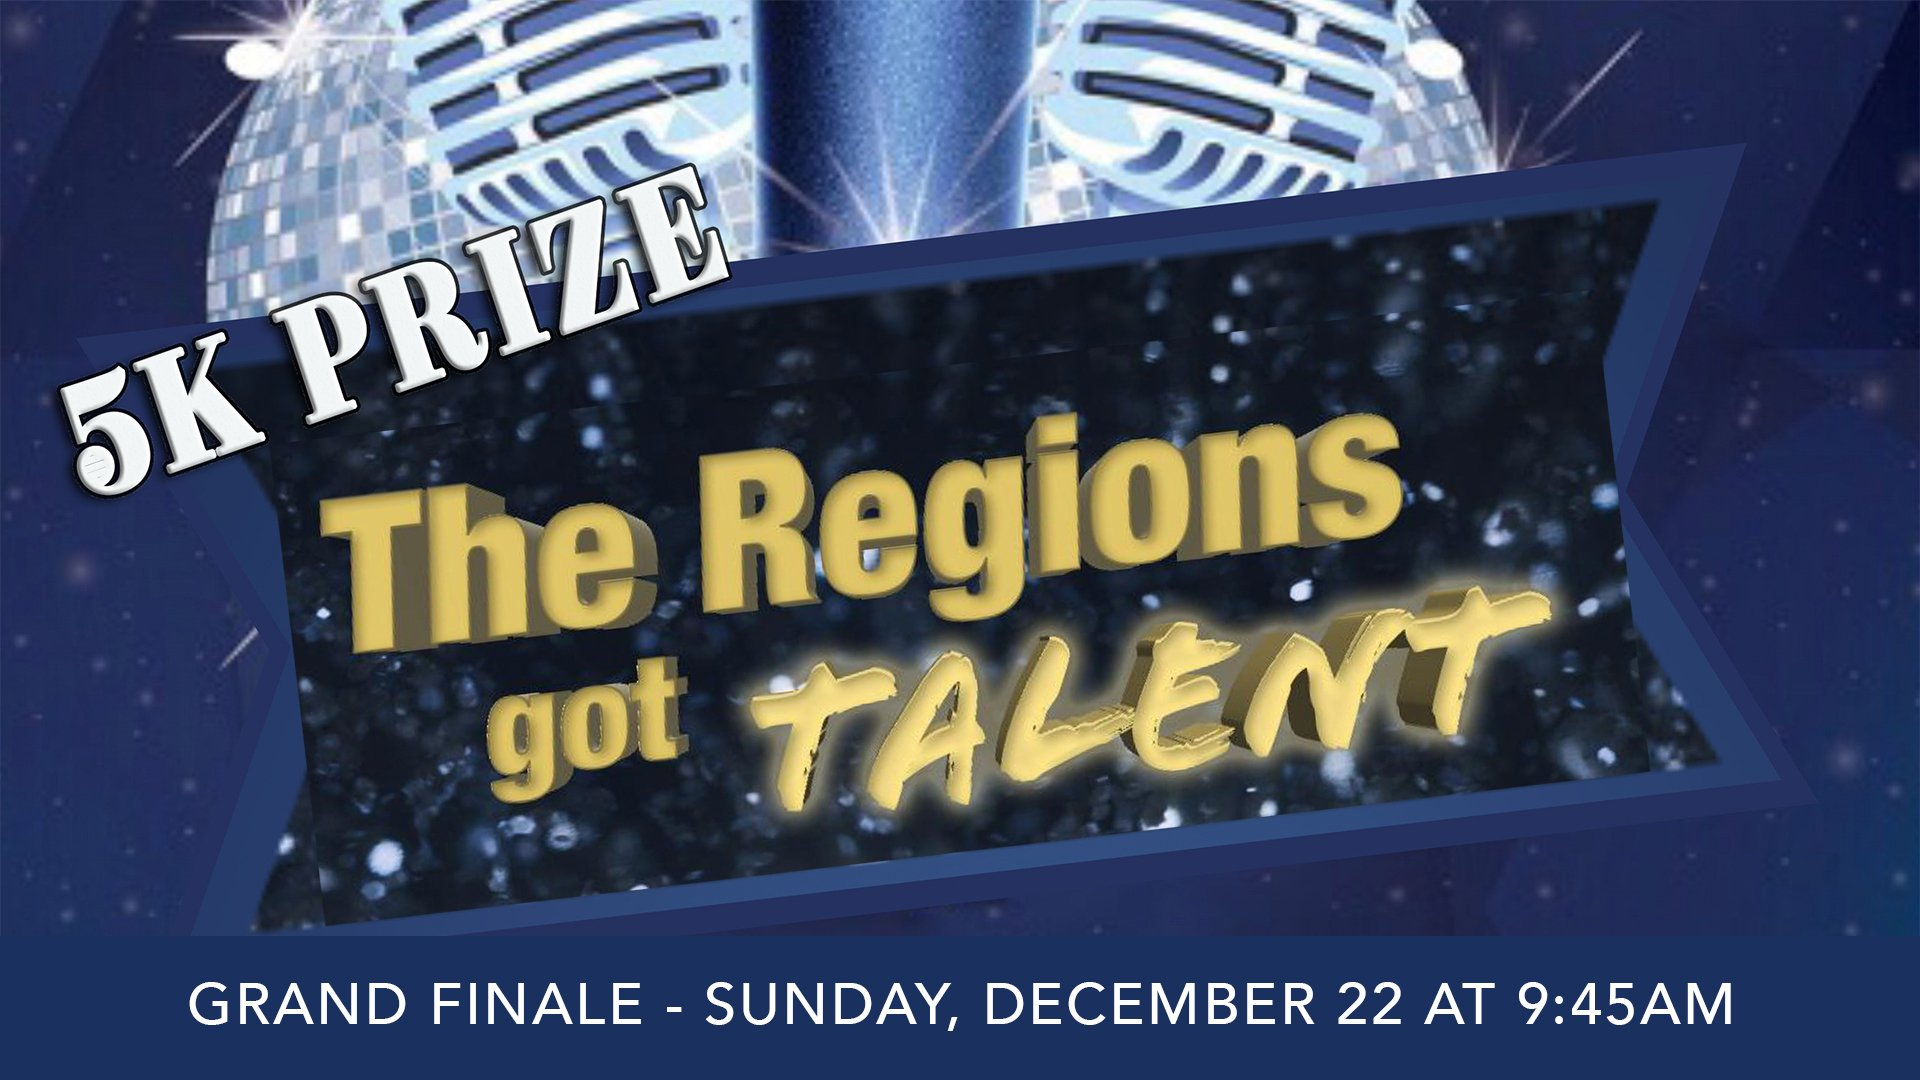 THE REGIONS GOT TALENT